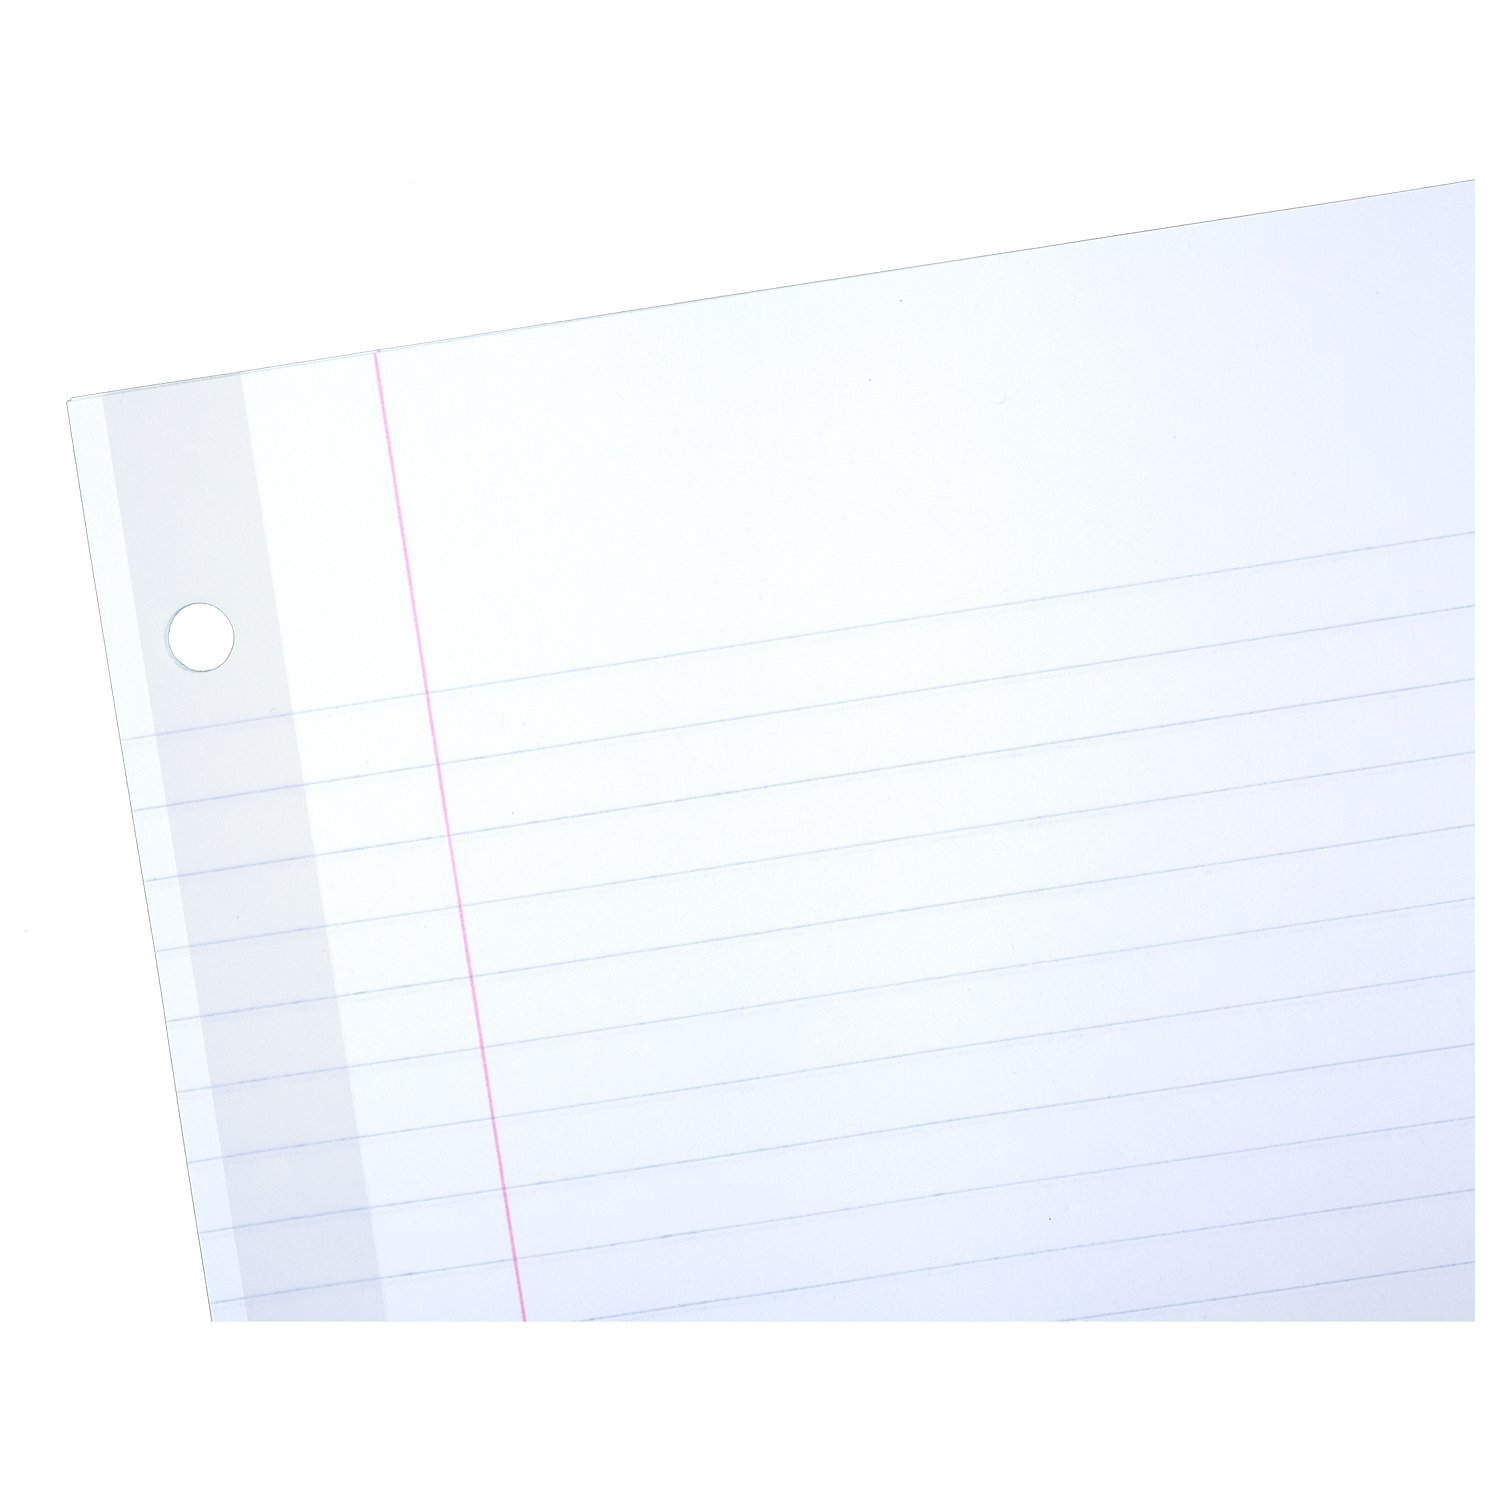 Mead Loose Leaf Paper, Filler Paper, Reinforced, College Ruled, 100 Sheets, 10-1/2'' x 8'', 3 Hole Punched, 3 Pack (38037) by Mead (Image #3)